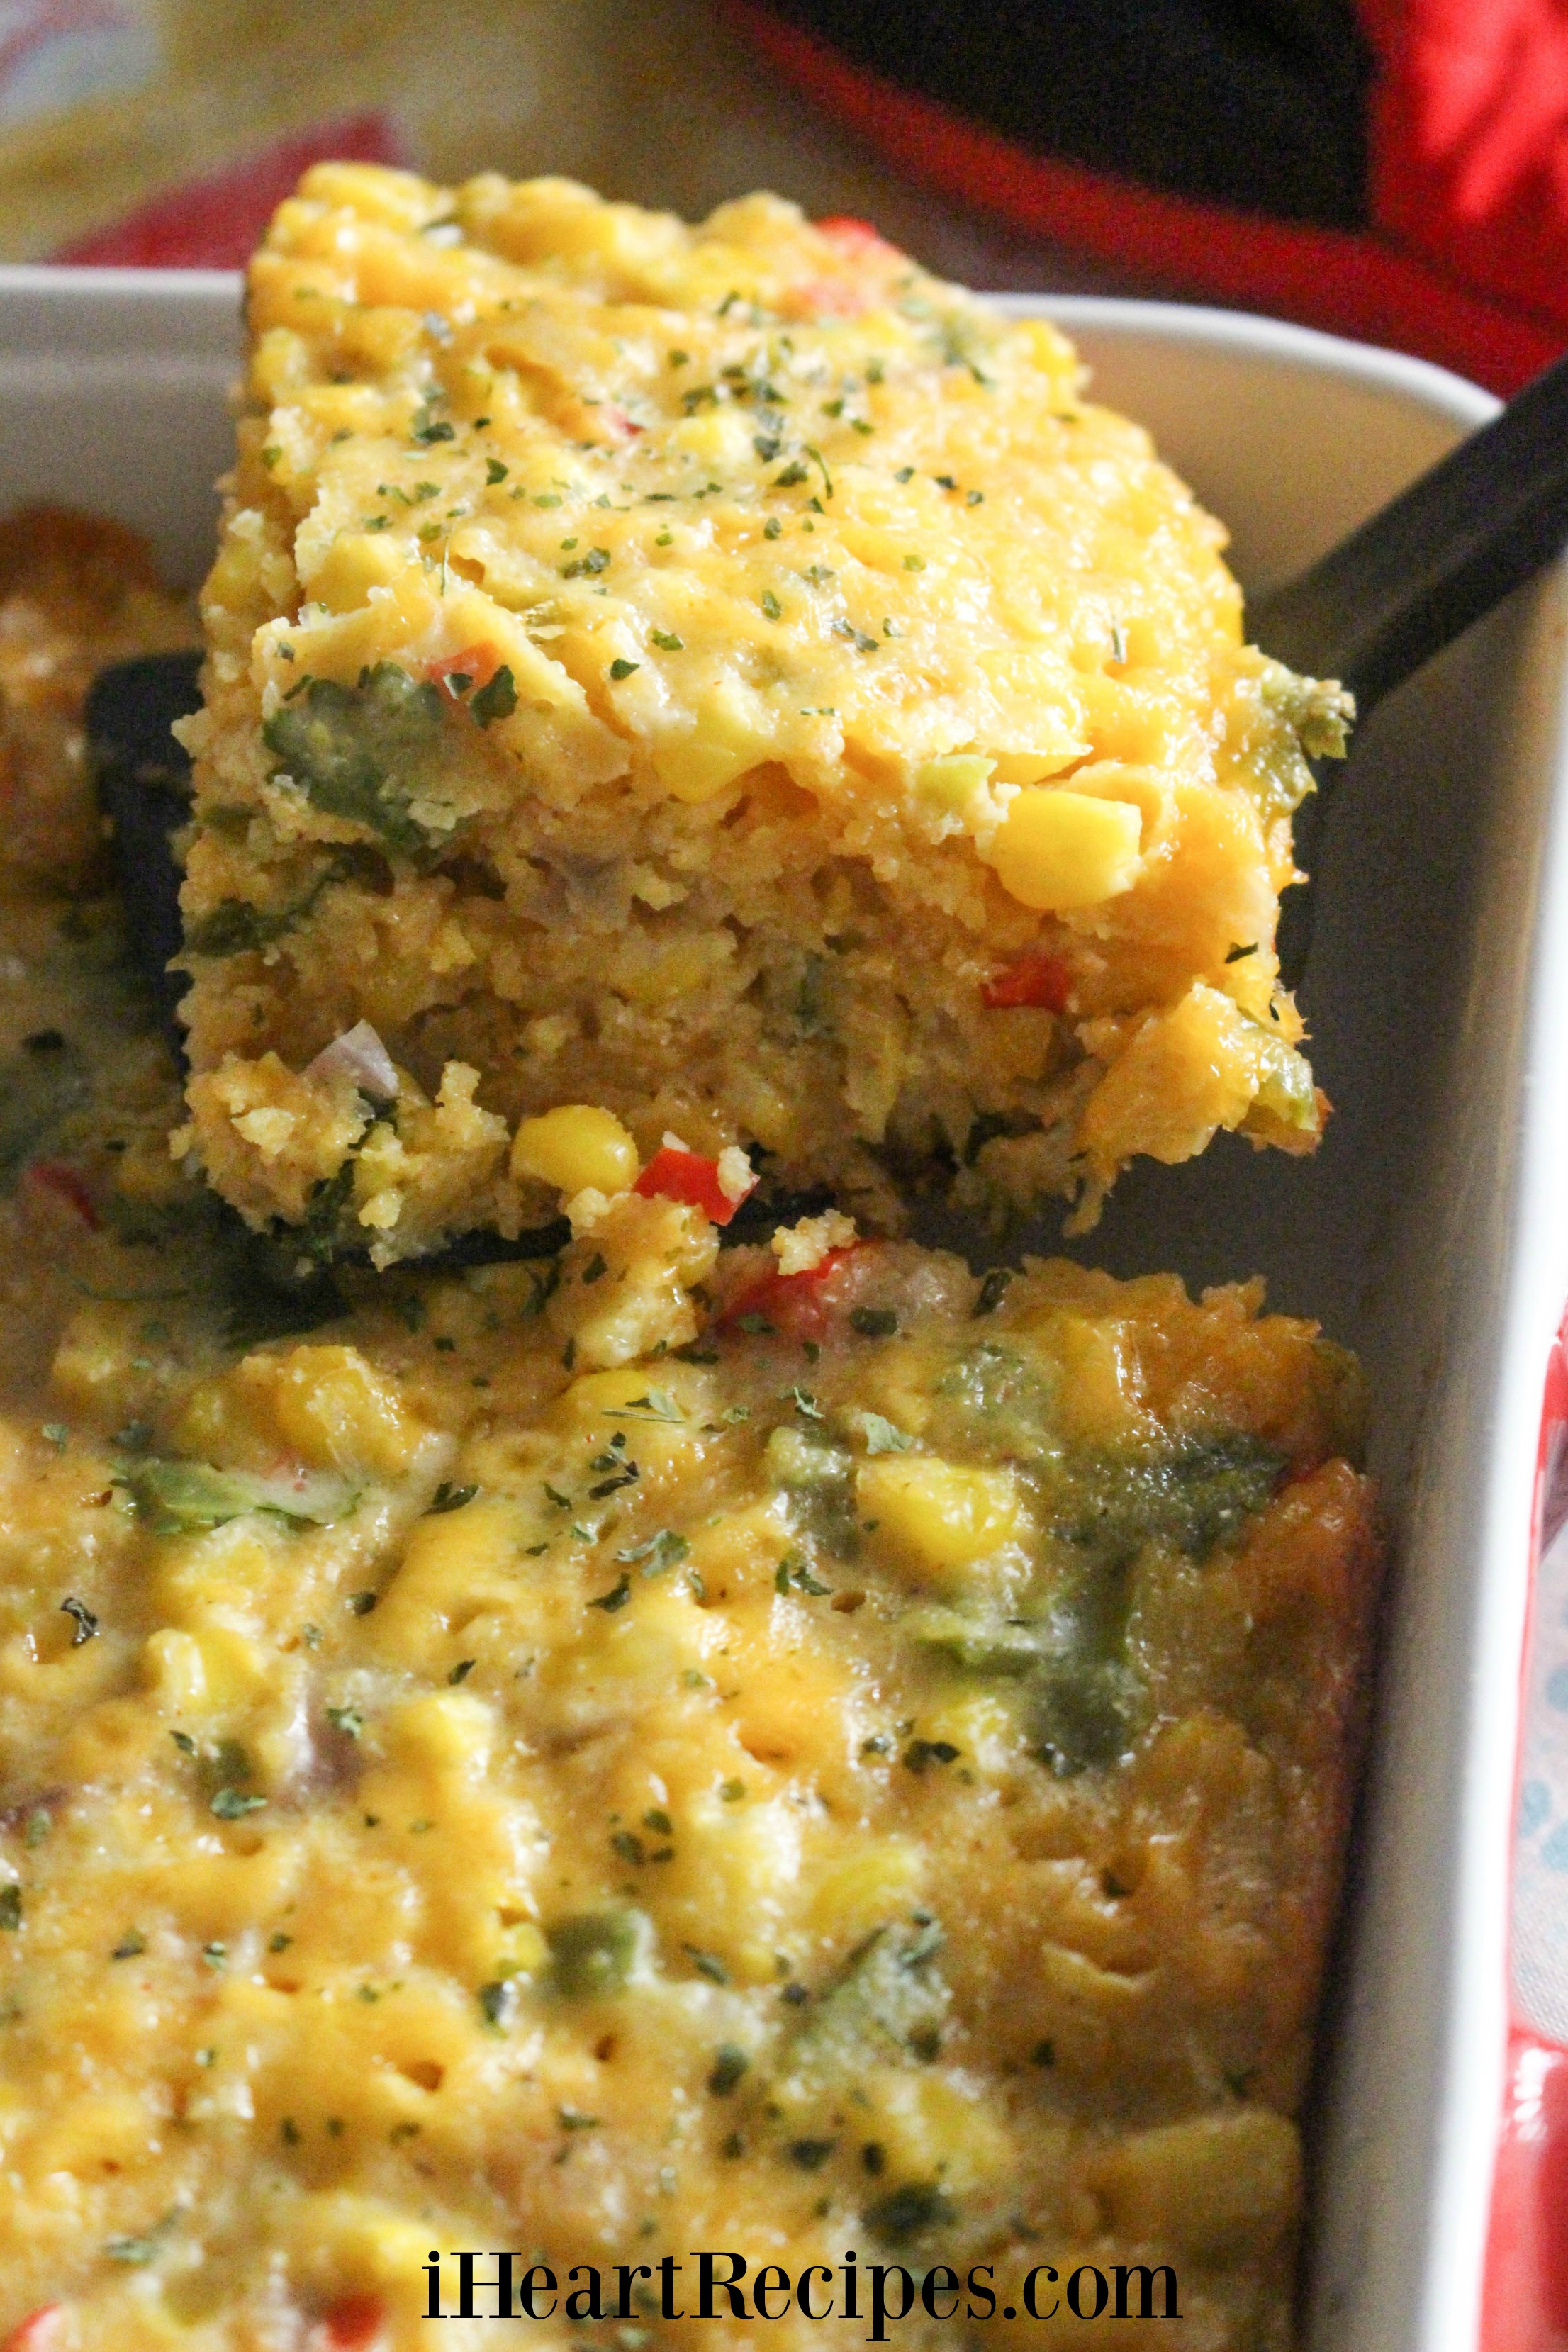 This light and fluffy corn casserole is a favorite for any occassion